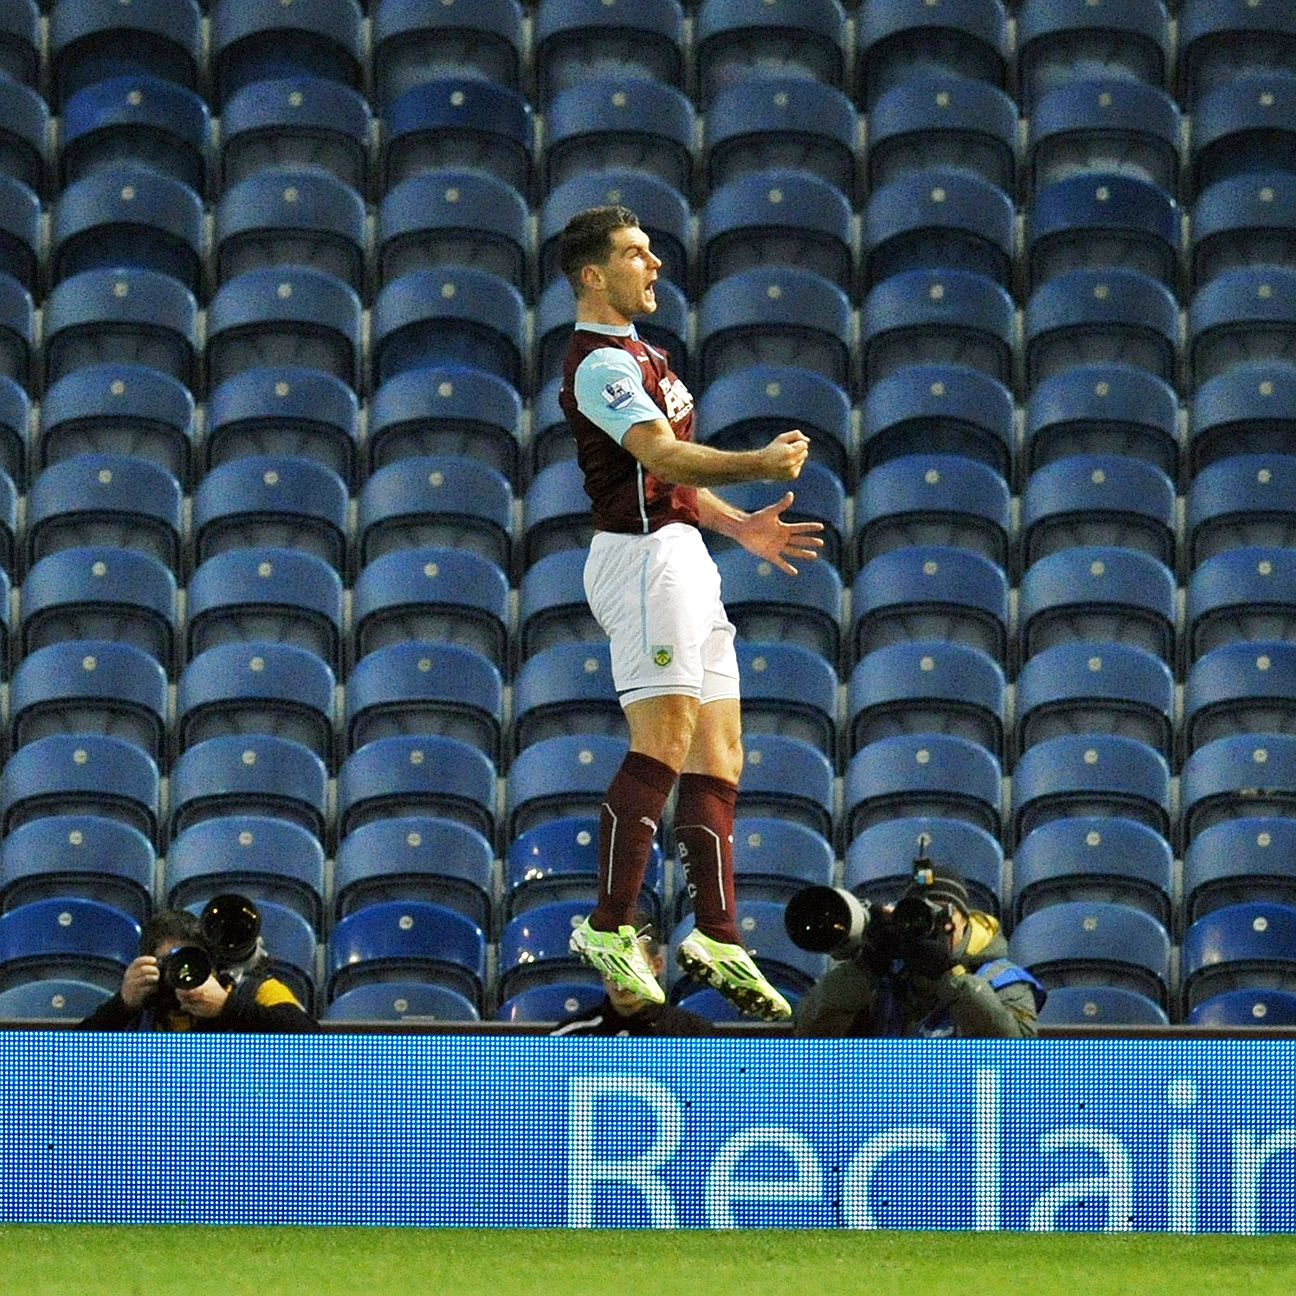 There weren't many there to see it, but Burnley's Sam Vokes scored his first goal since his long-term injury last March.